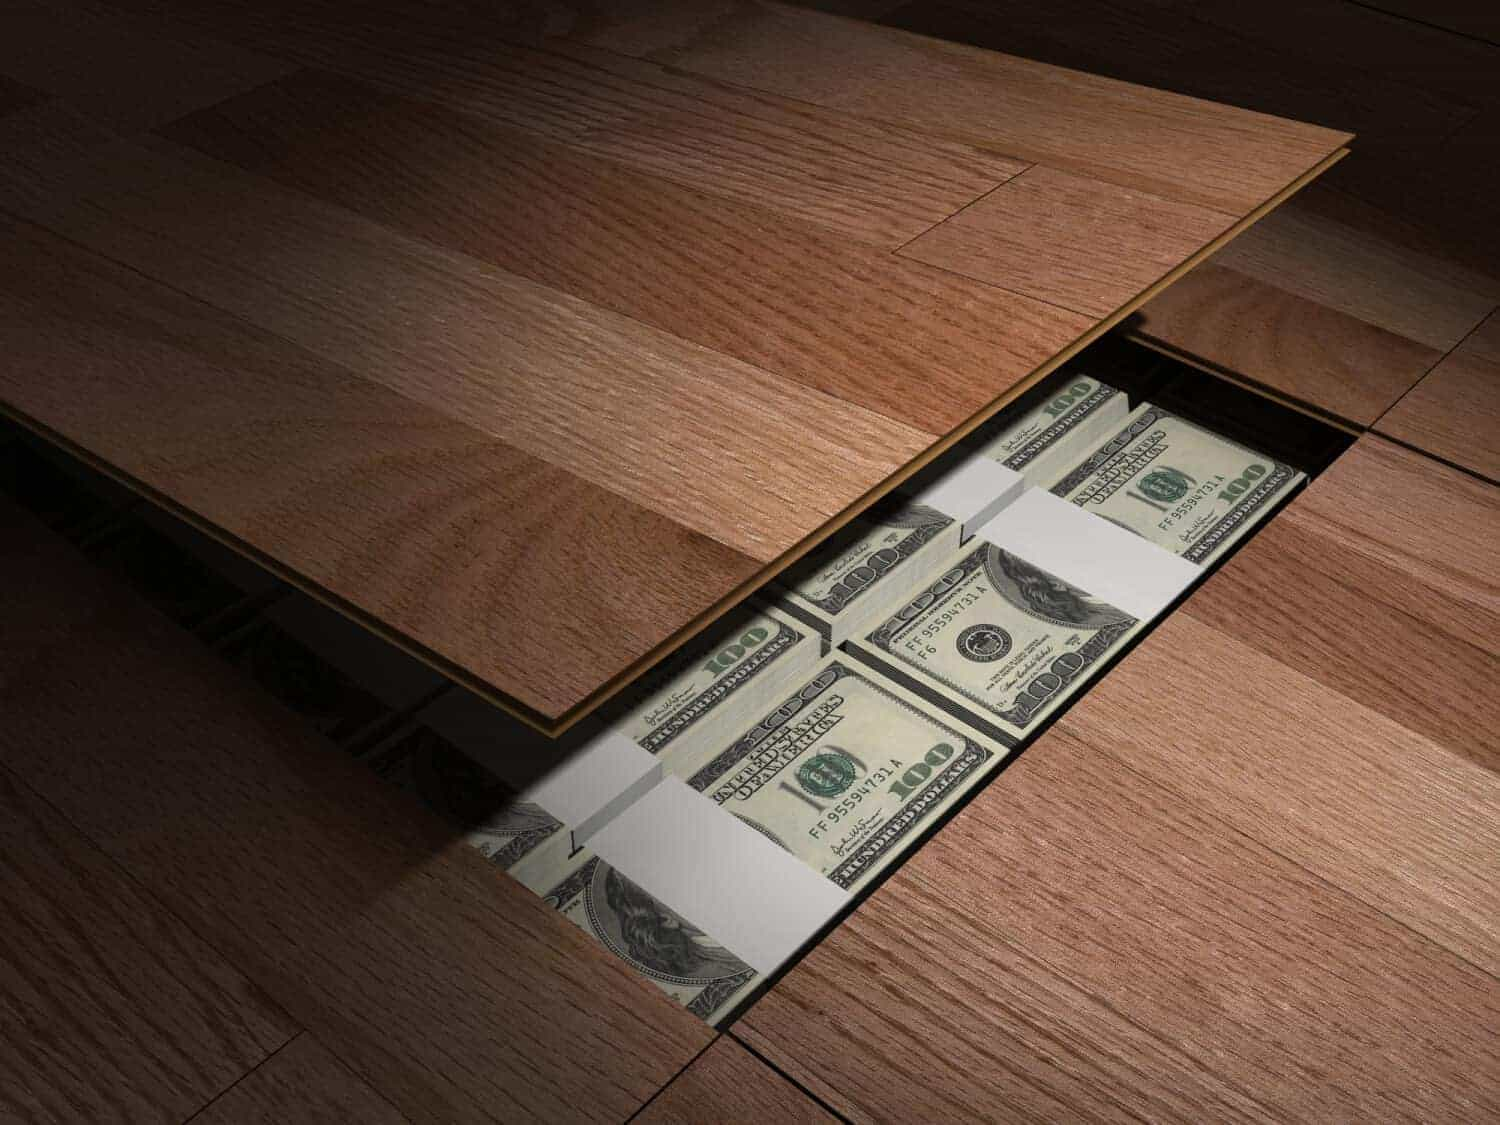 A private stash of hundreds of dollars hidden under the floor boards